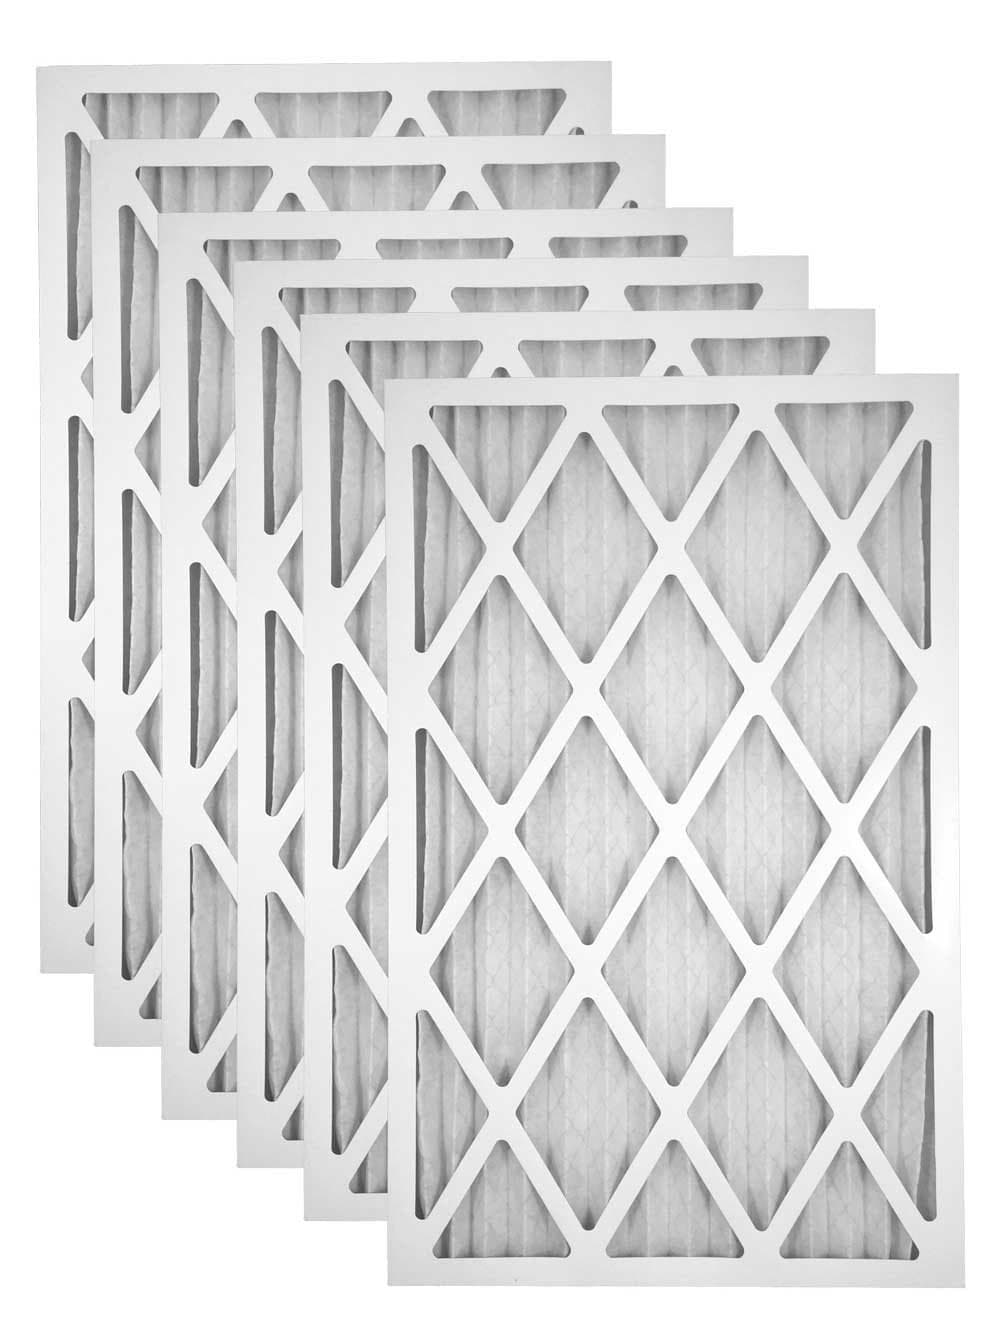 21.5x23.25x1 Merv 8 Pleated AC Furnace Filter - Case of 6